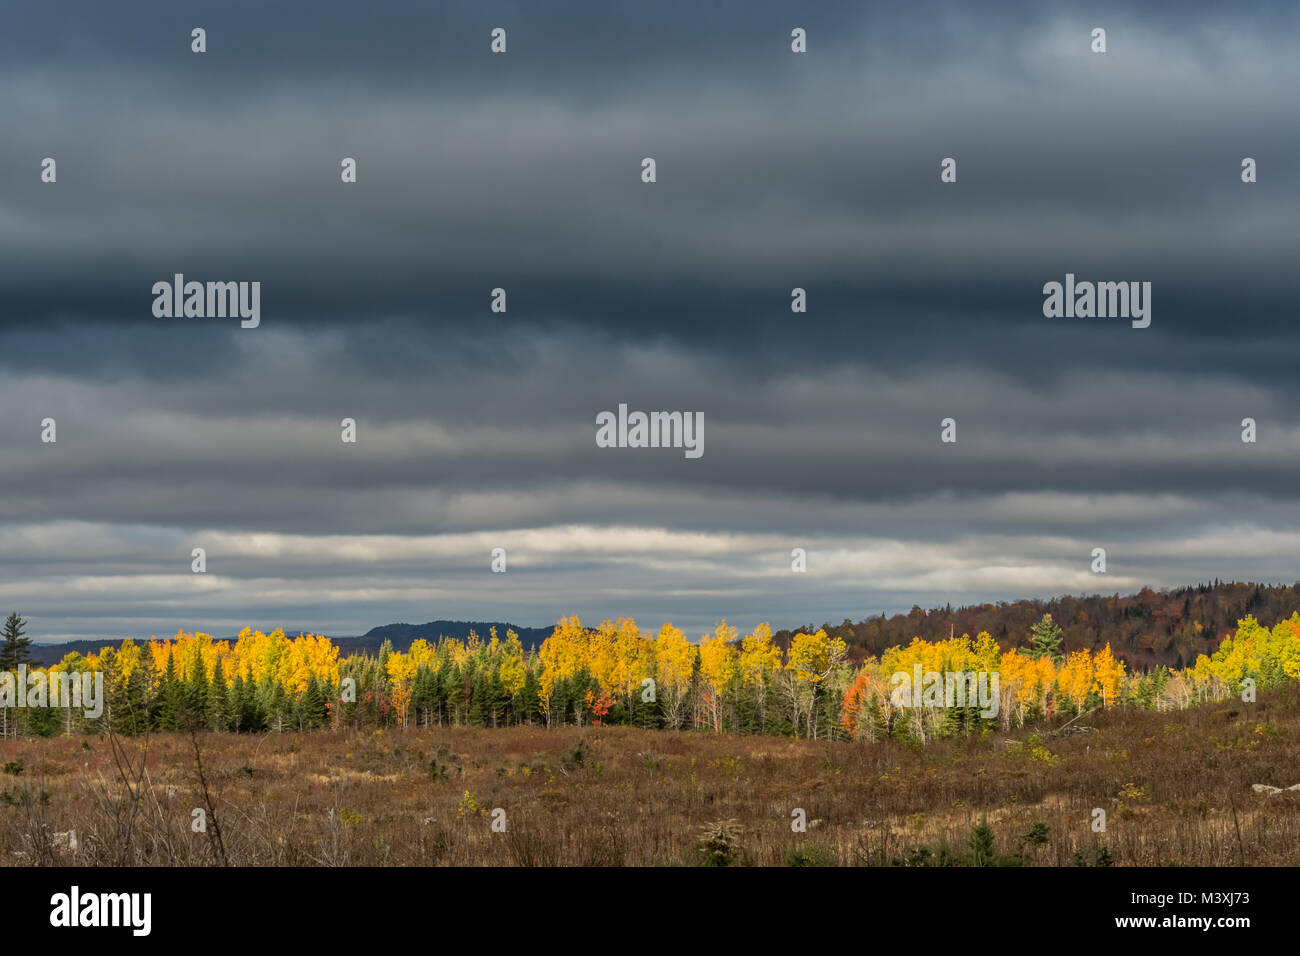 Line of Yellow Birch Trees Under Gray Sky in Maine wilderness - Stock Image